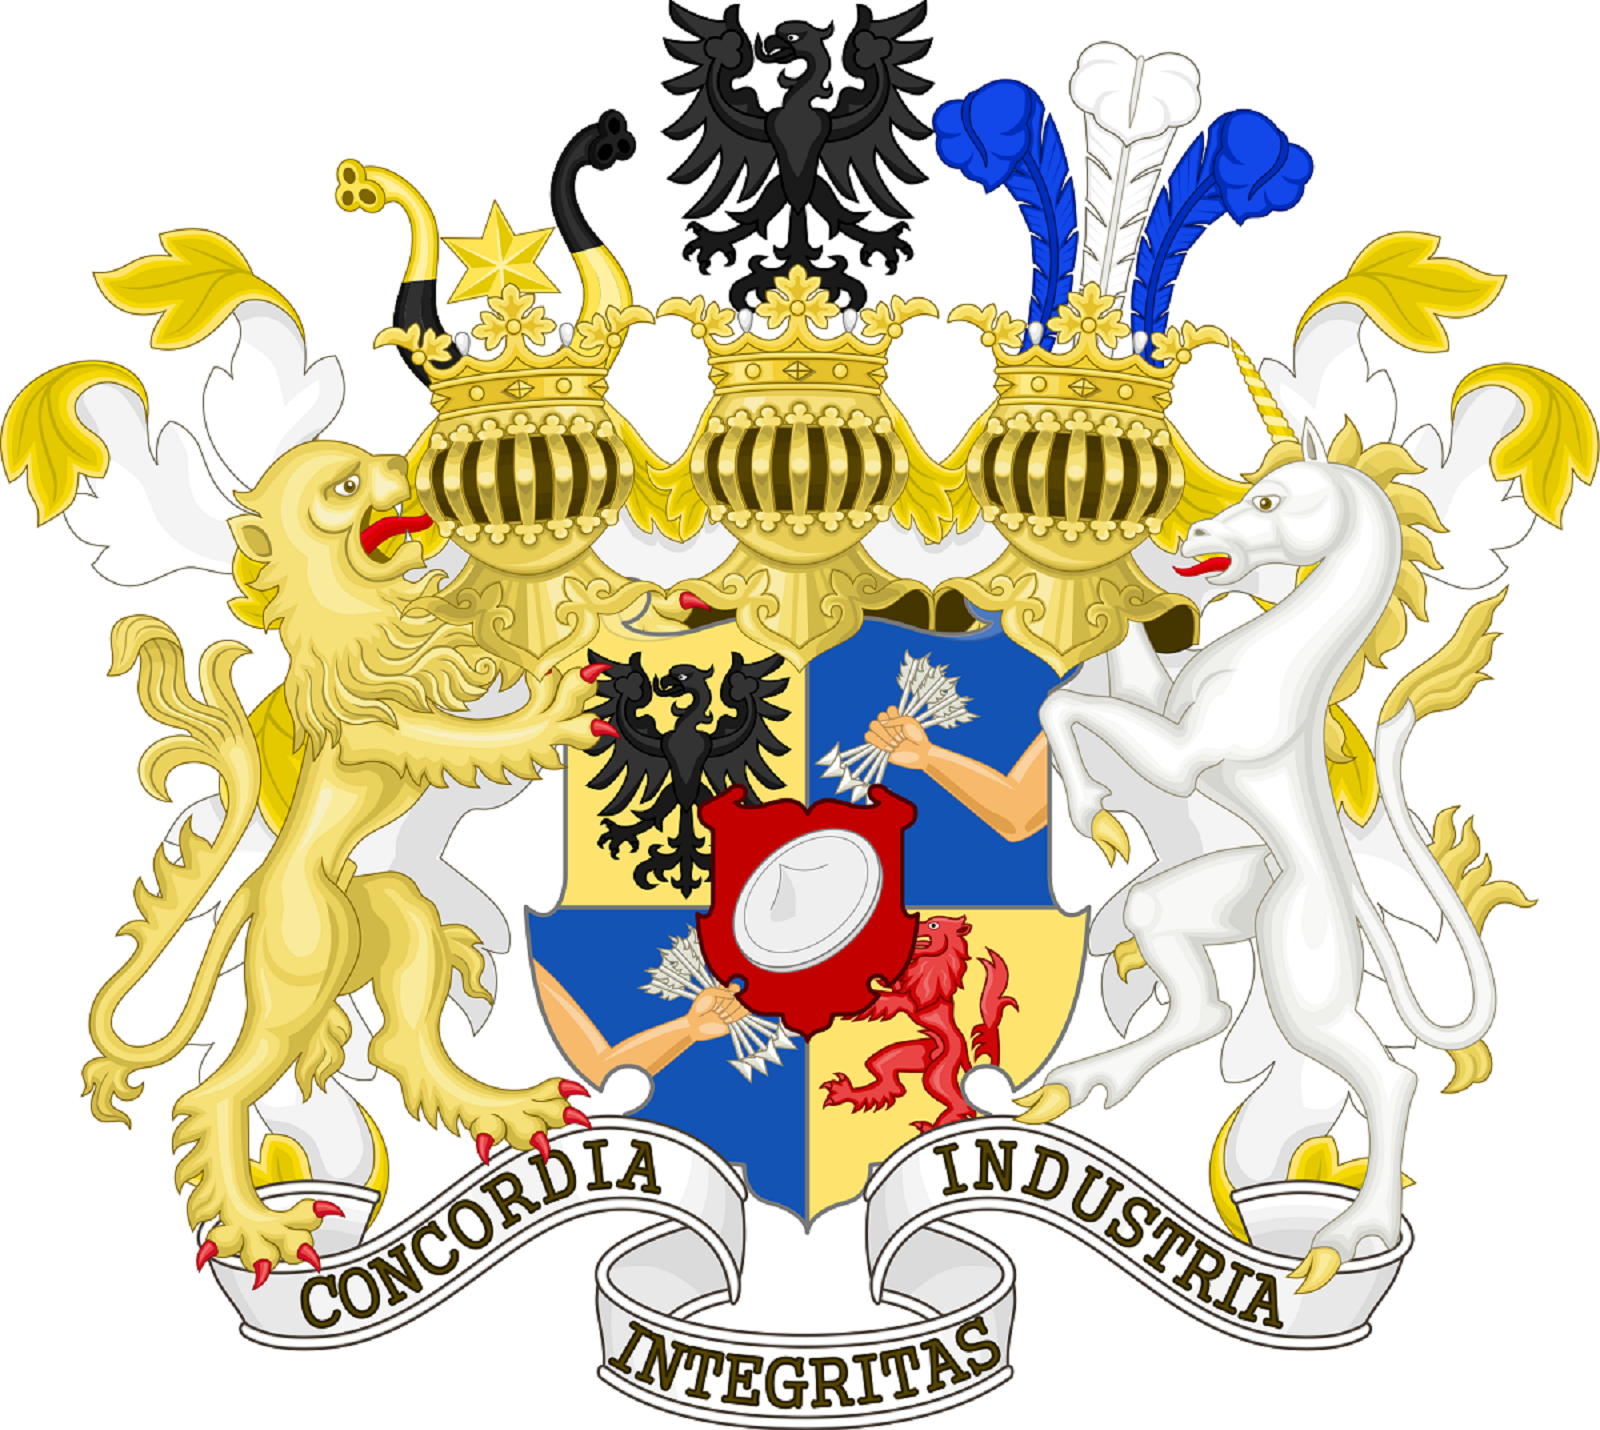 5 Lesser Known Facts about the Rothschild Family